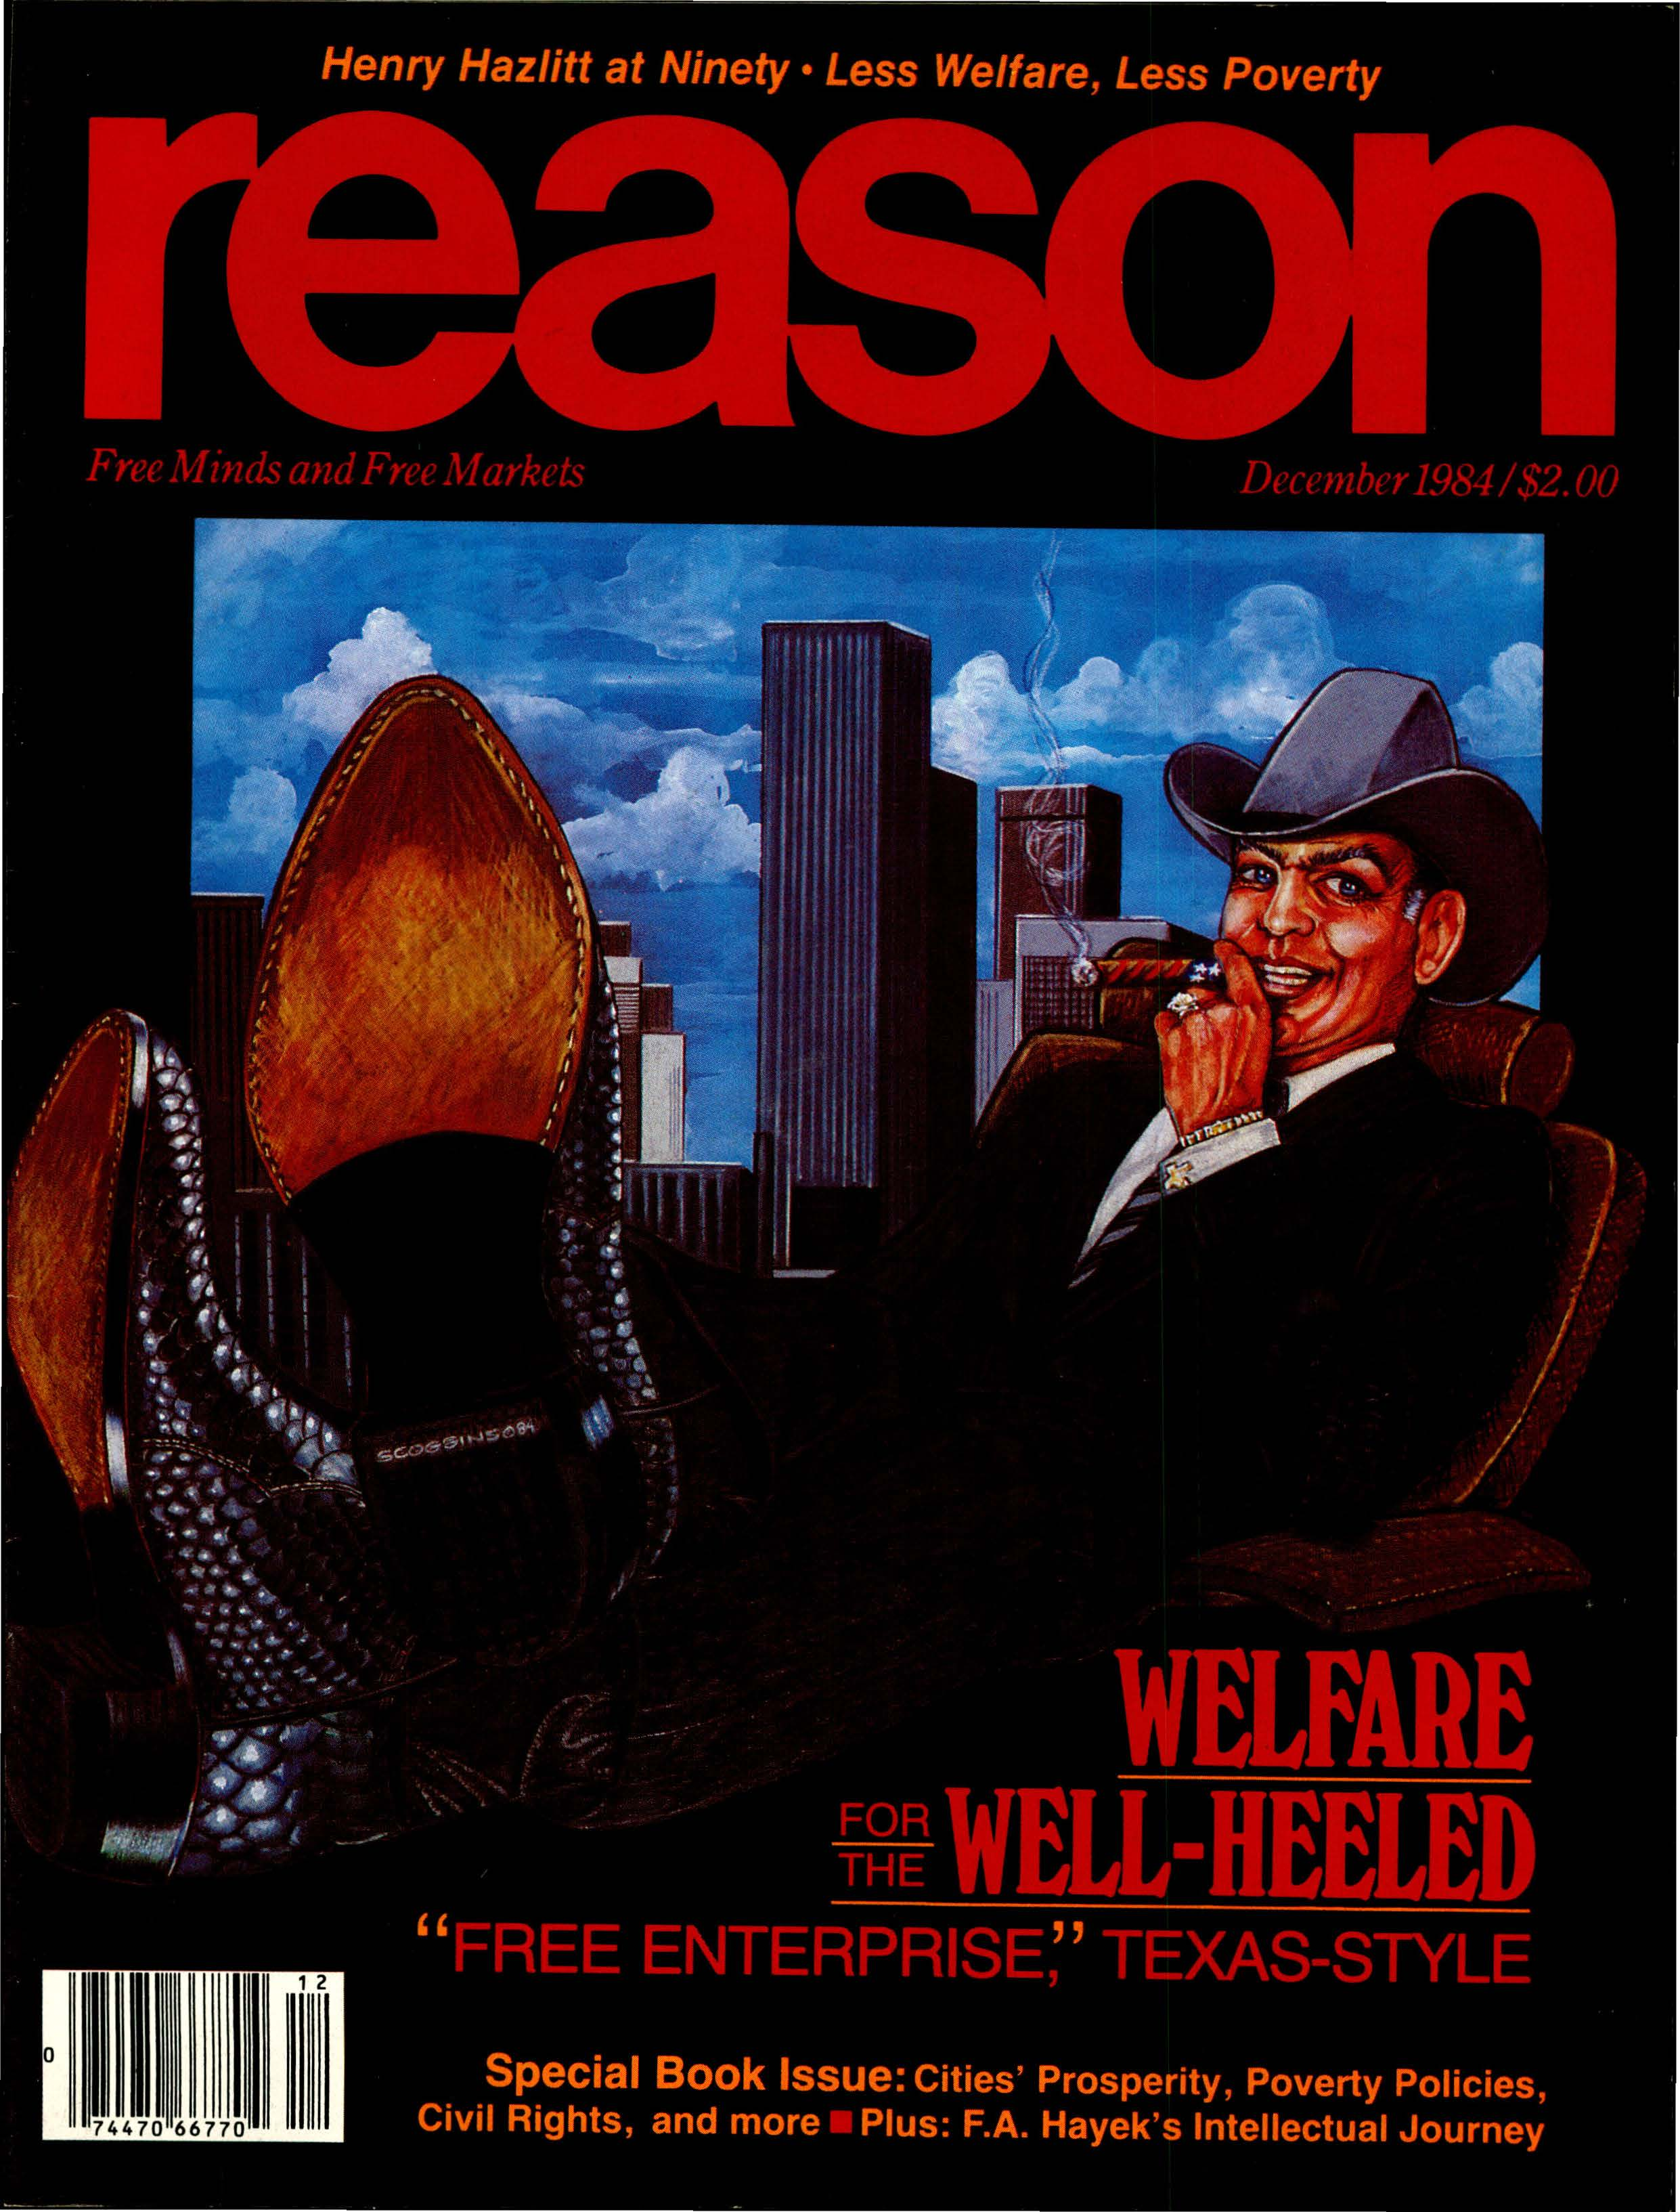 Reason Magazine, December 1984 cover image